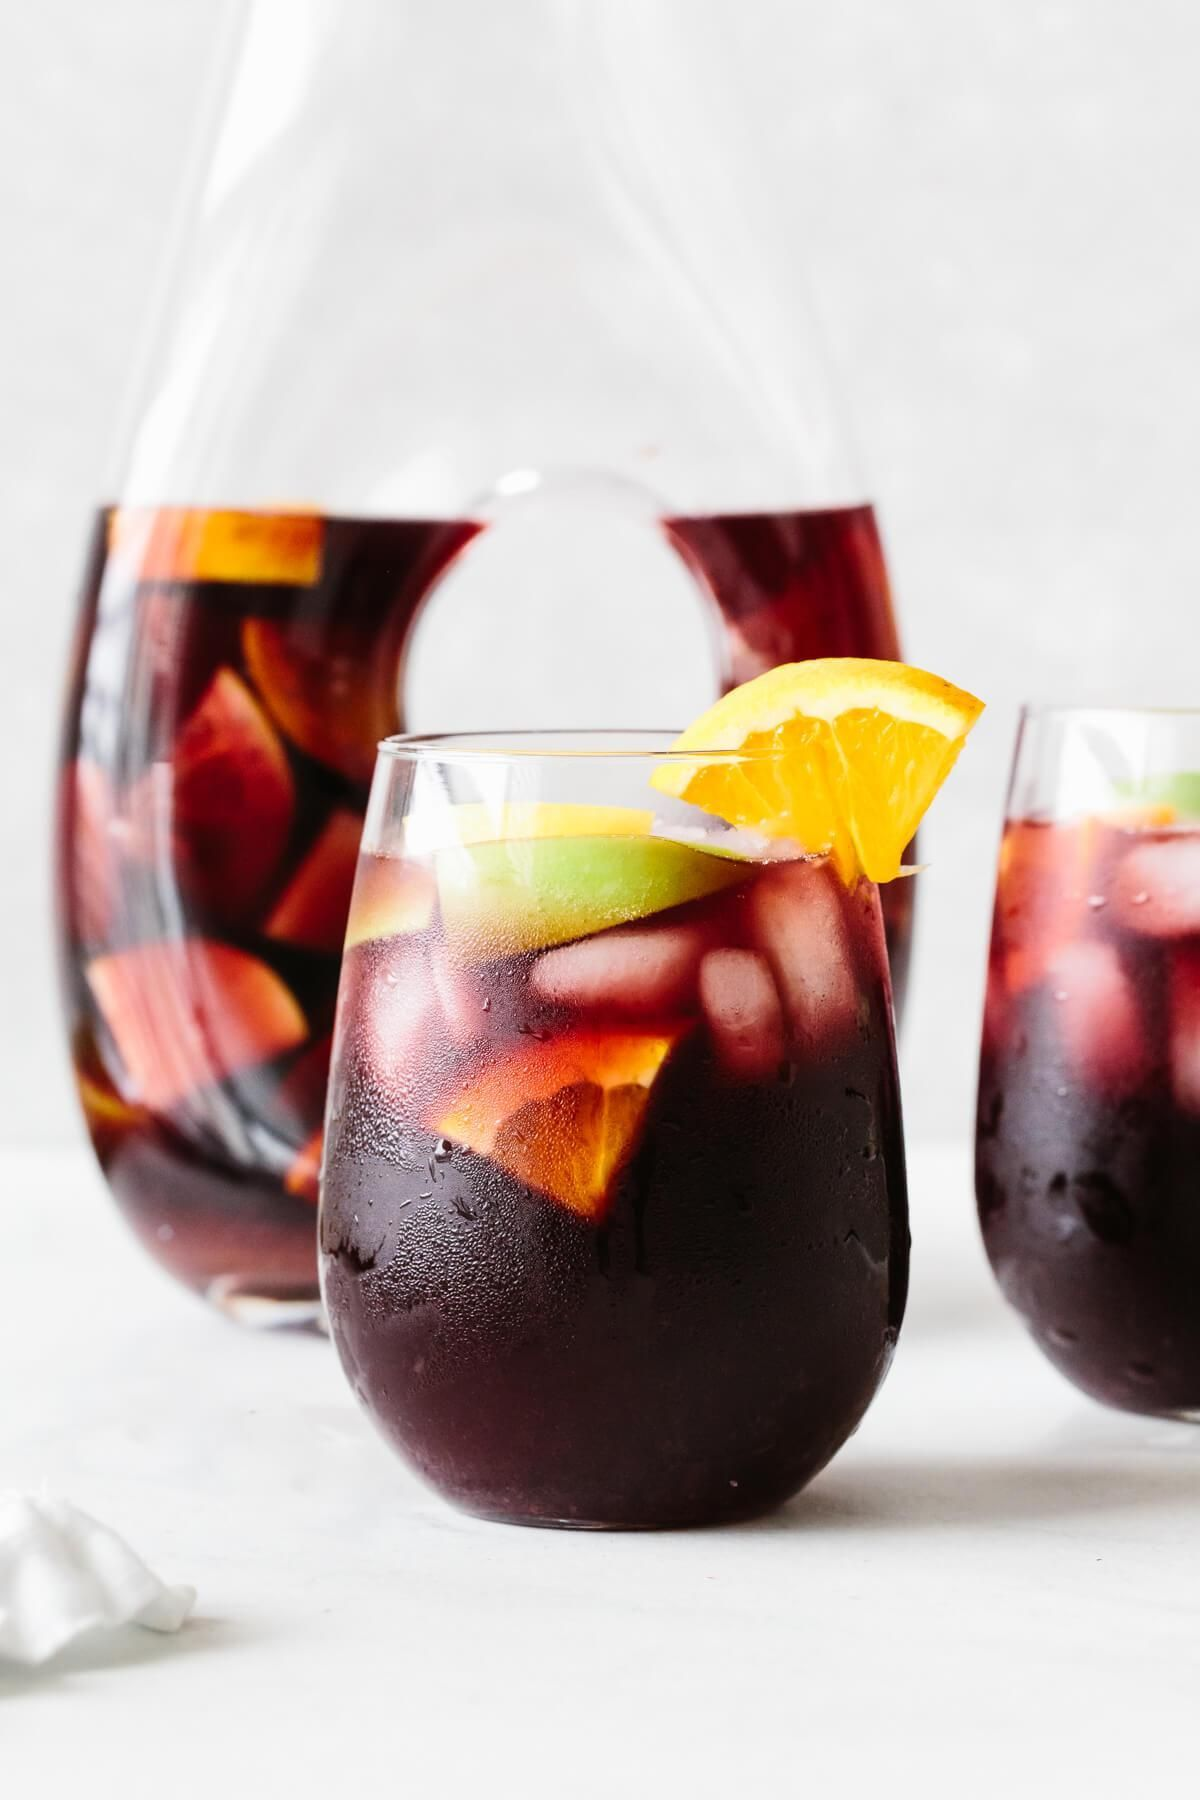 Authentic Red Sangria Recipe Downshiftology Sangriarecipesred Authentic Red Sangria Recipe Downshiftol In 2020 Red Sangria Red Sangria Recipes Best Sangria Recipe